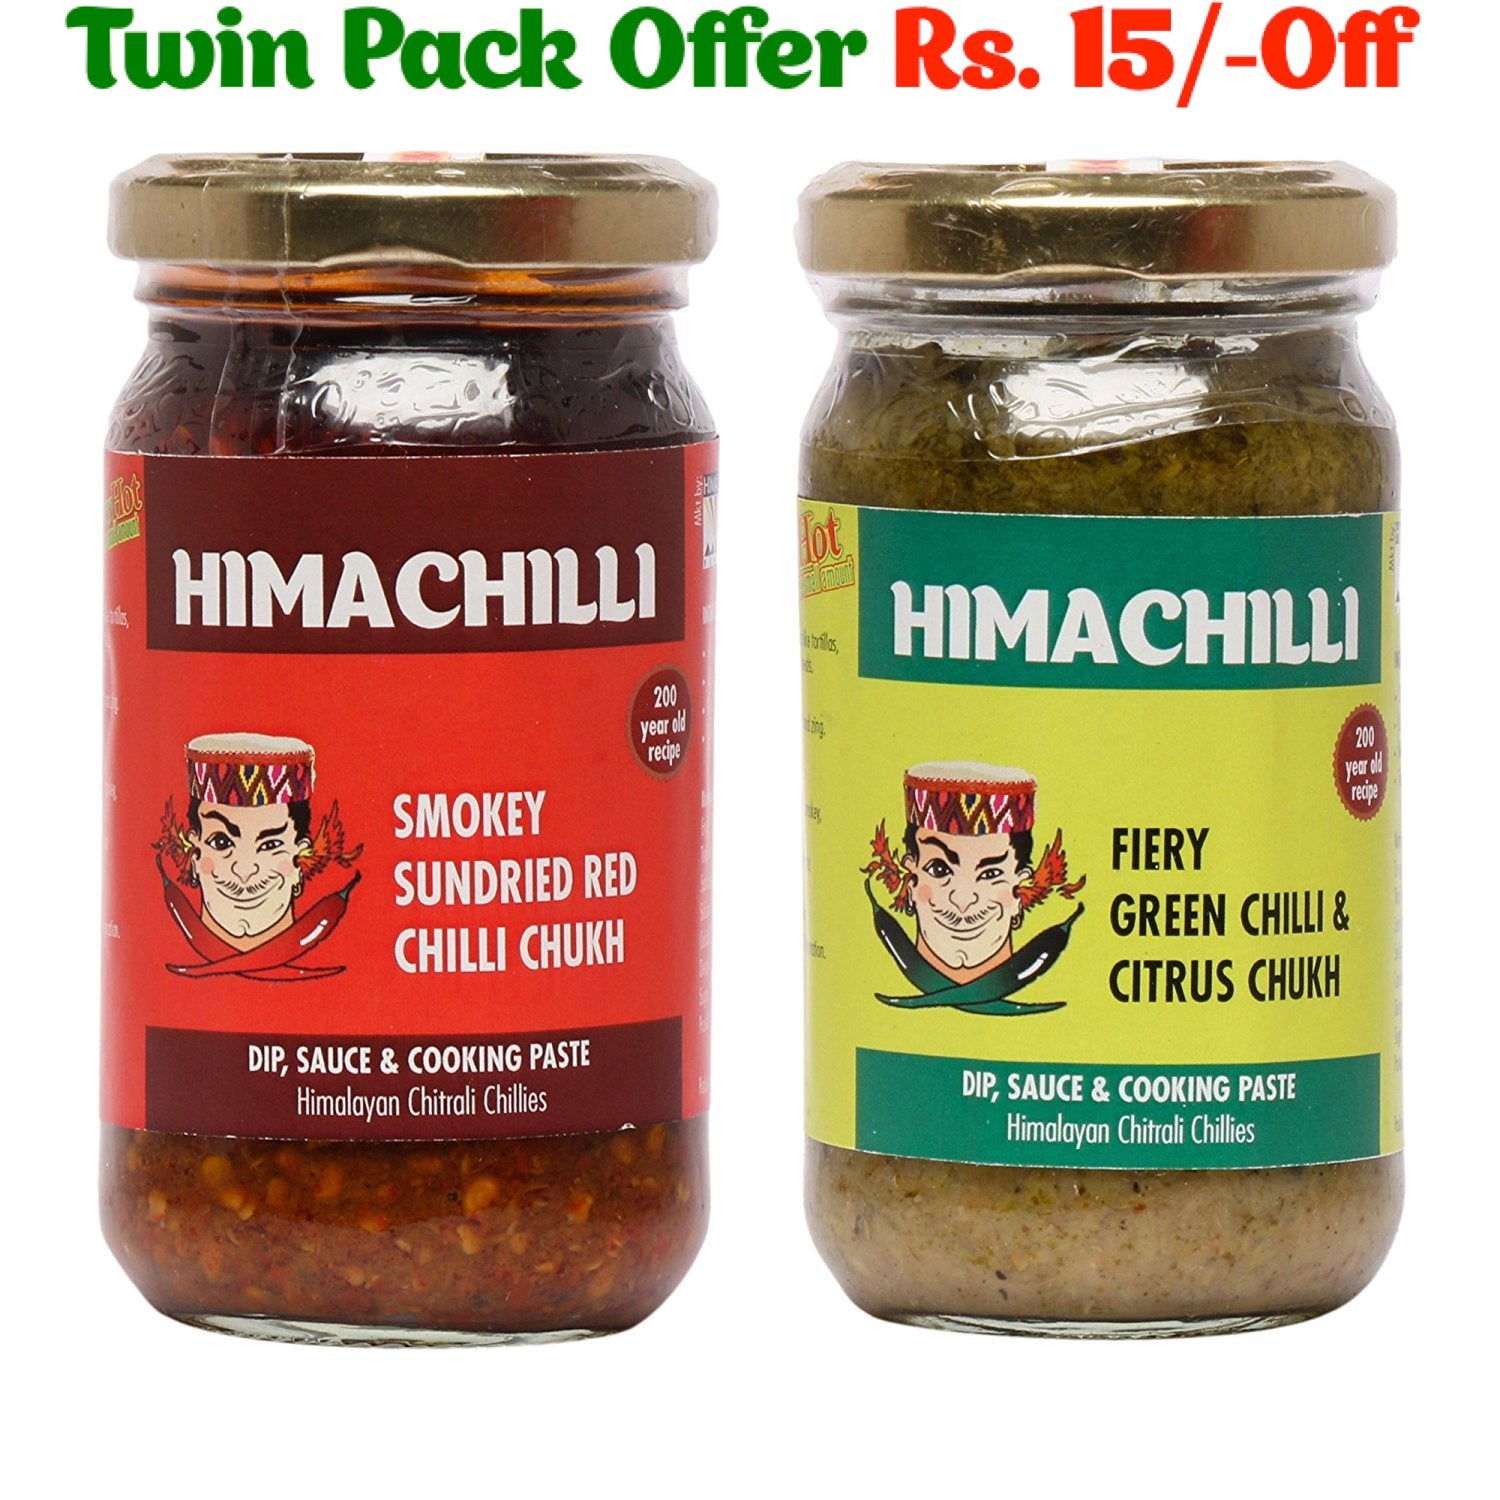 Red Chilli Dip, Green Chilli Dip, Chilli Marinade, Hot Sauce, Chilli Pickle, very hot Pickles, Chilli Paste, Chamba Chukh